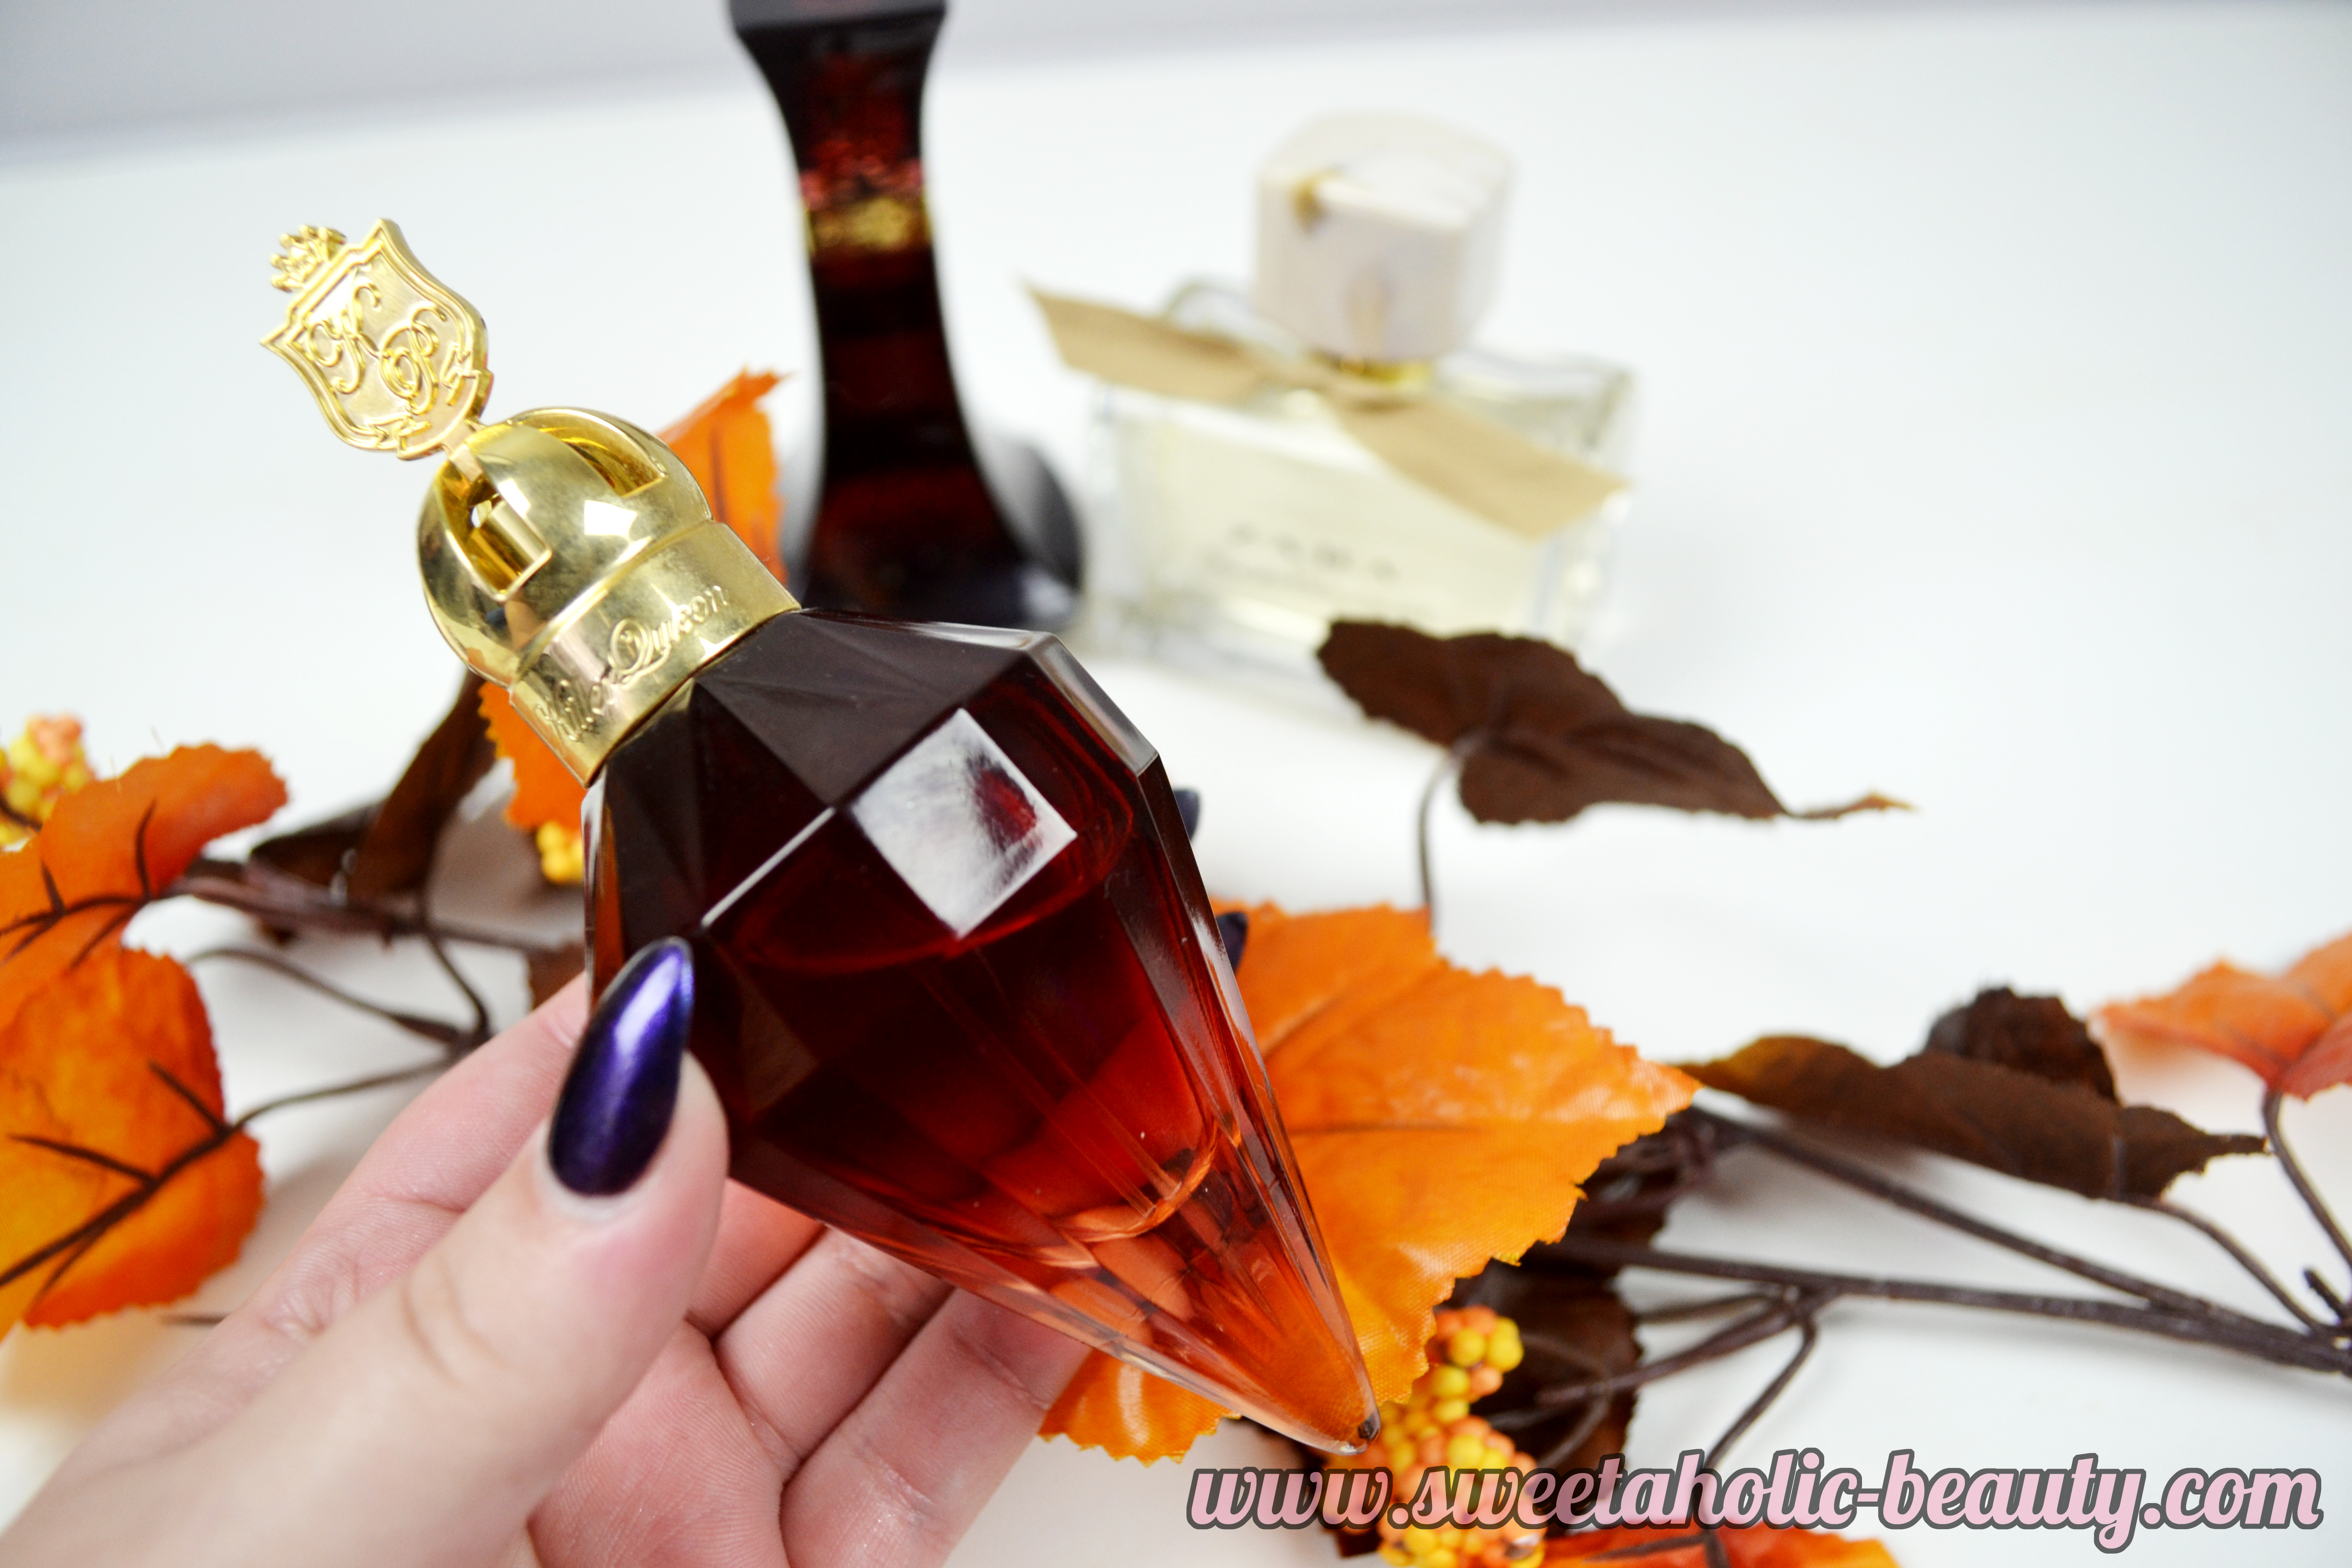 My Current Autumn Fragrances - Sweetaholic Beauty